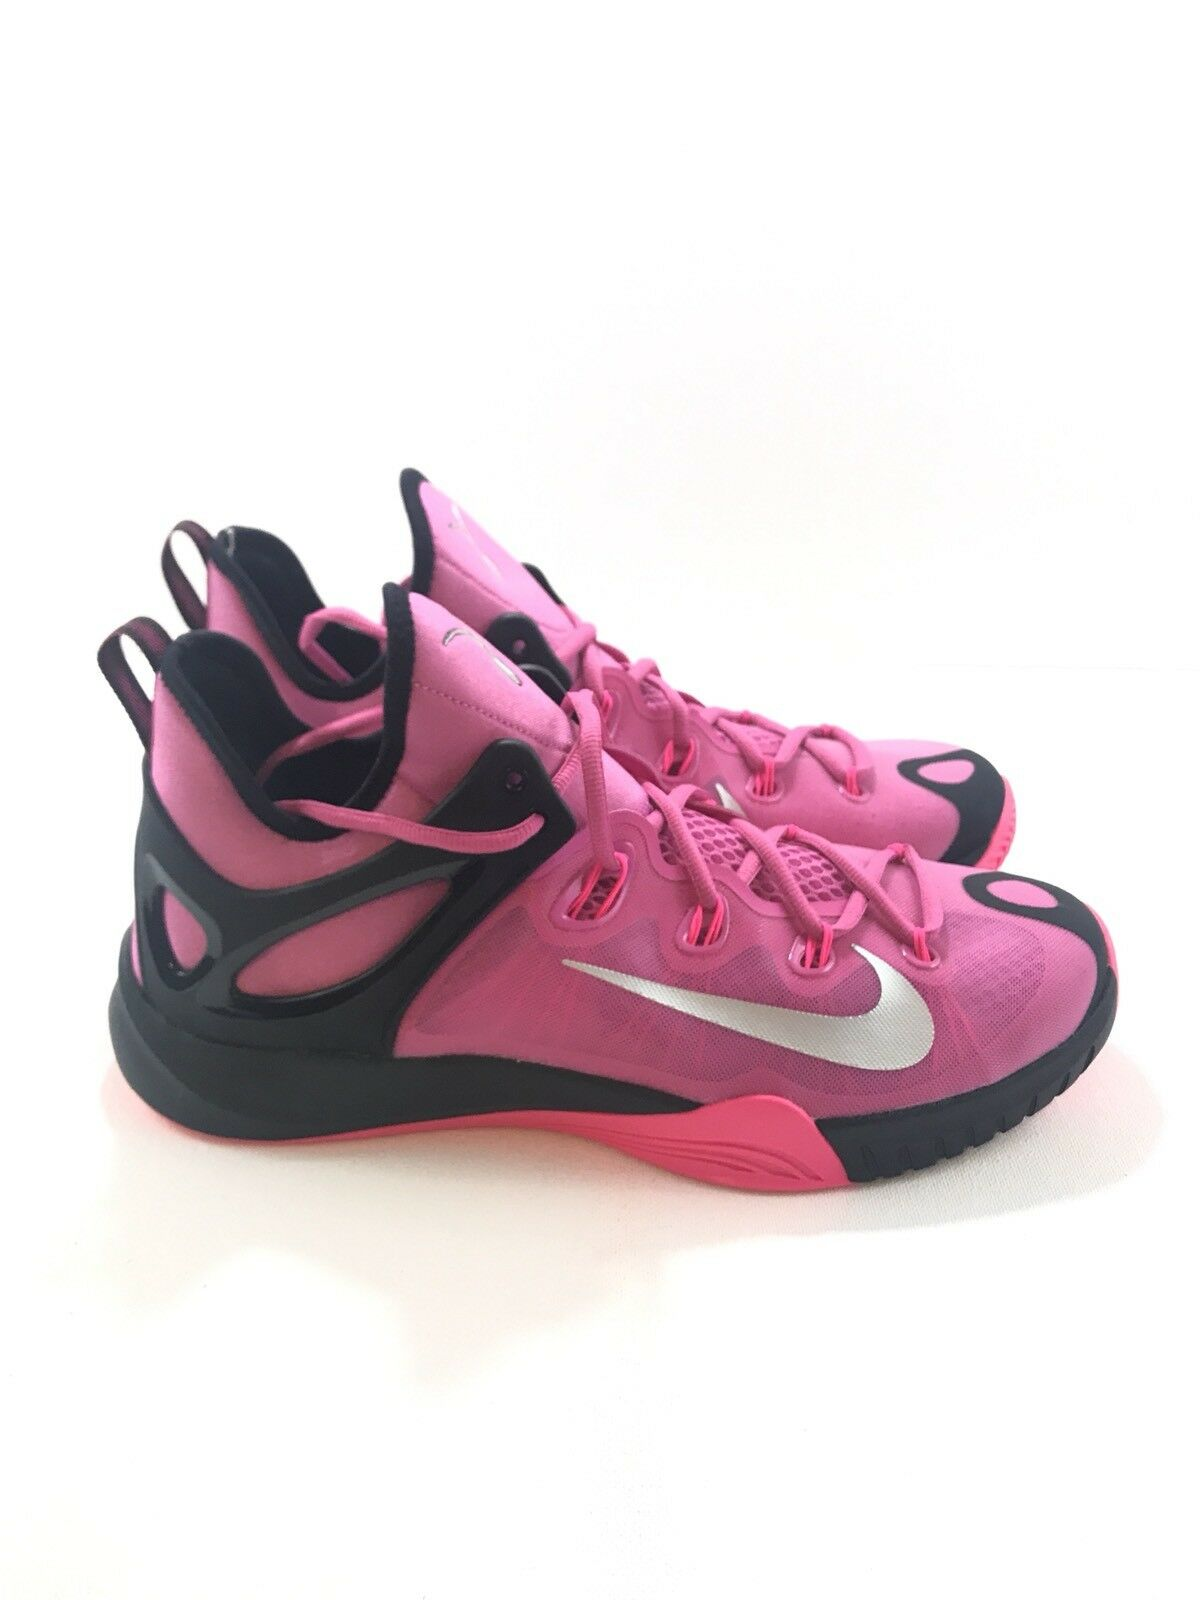 Nike Zoom HyperRev 2015 - Sz 11.5 Pink Breast Cancer Kay Yow shoes 705370-606